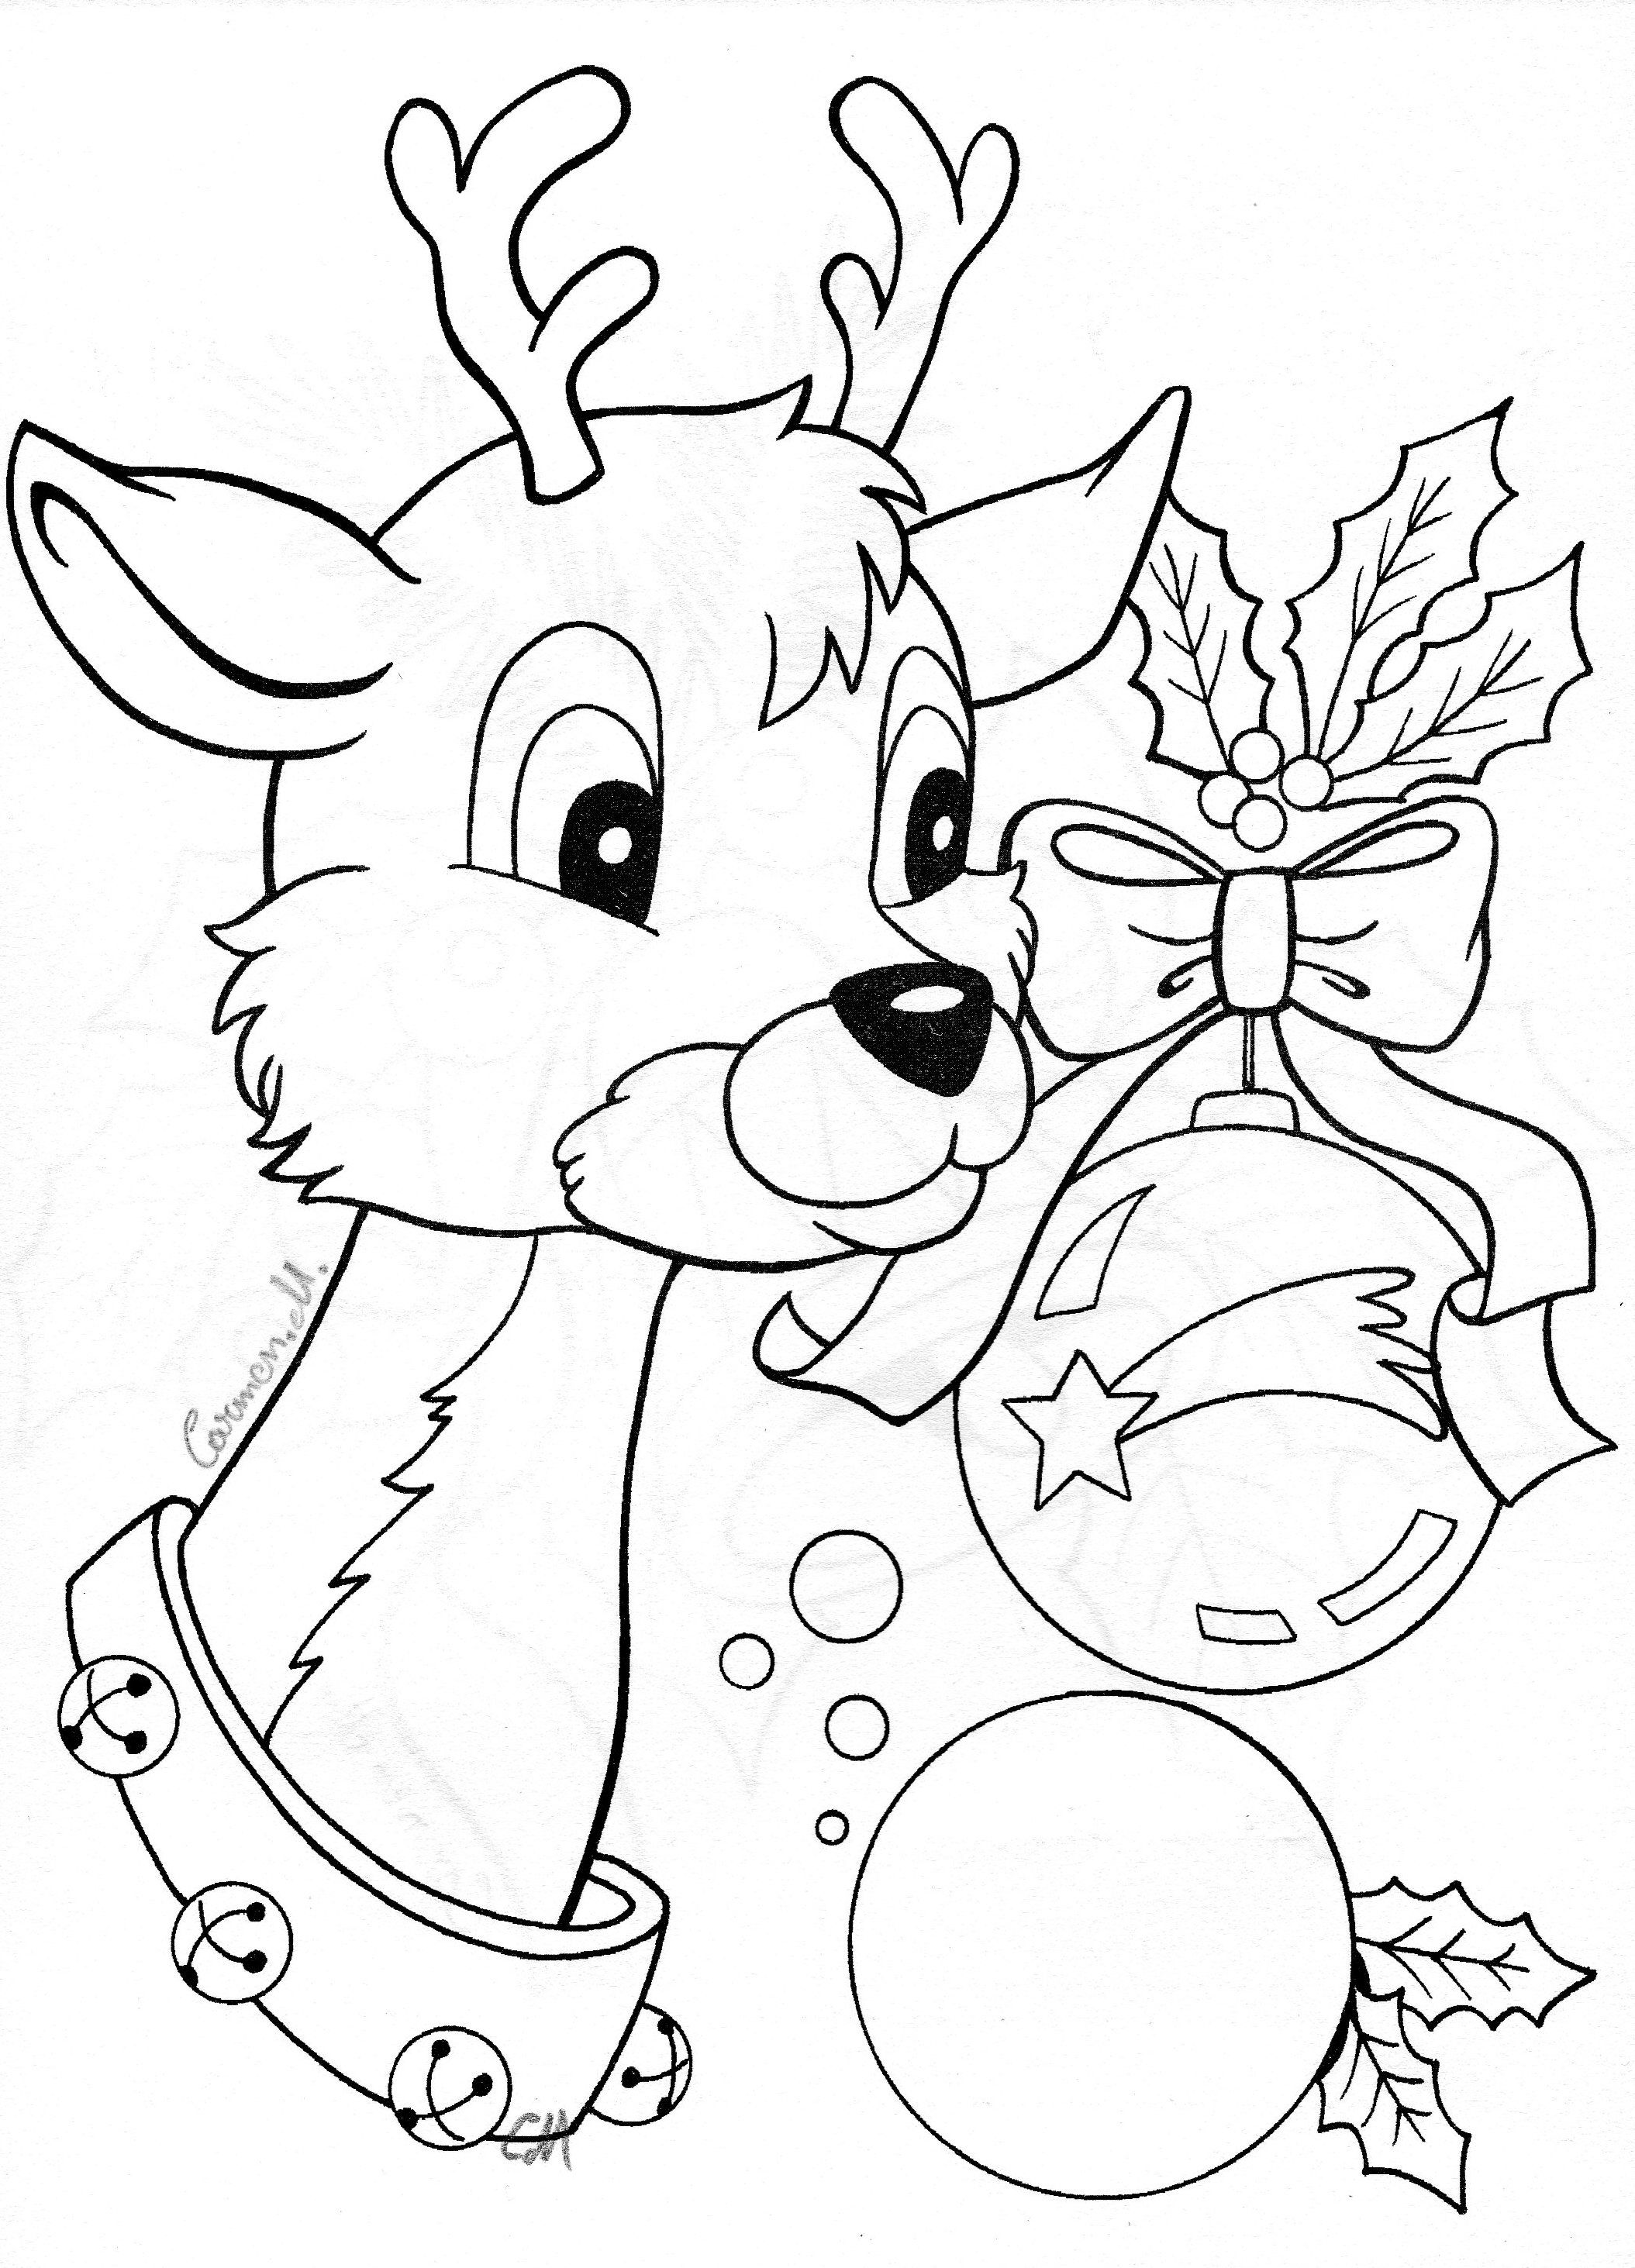 Deer Coloring Pages in 2020 (With images) | Deer coloring pages ... | 2926x2109